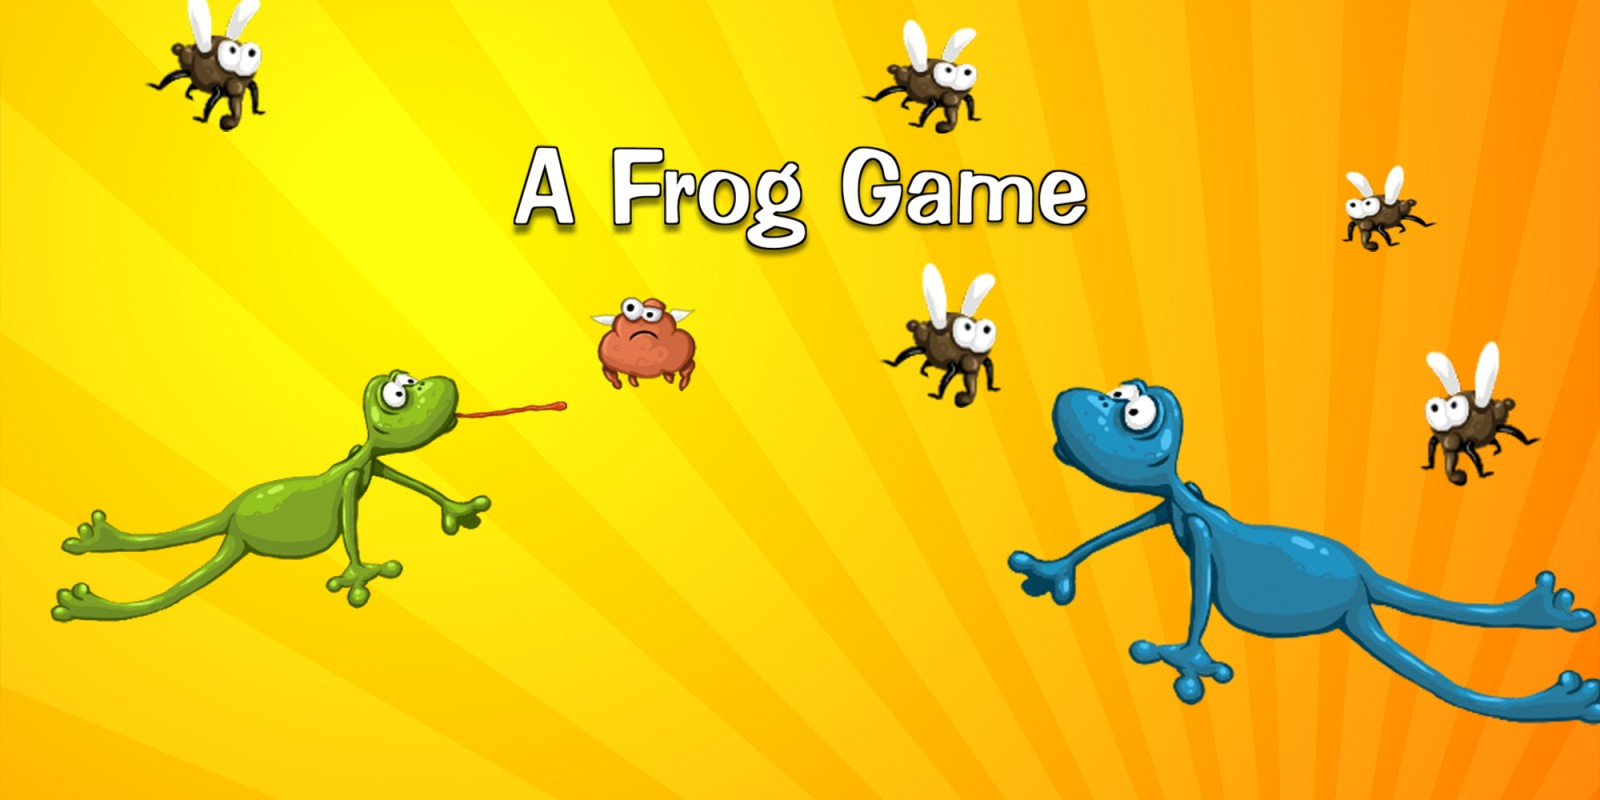 A Frog Game